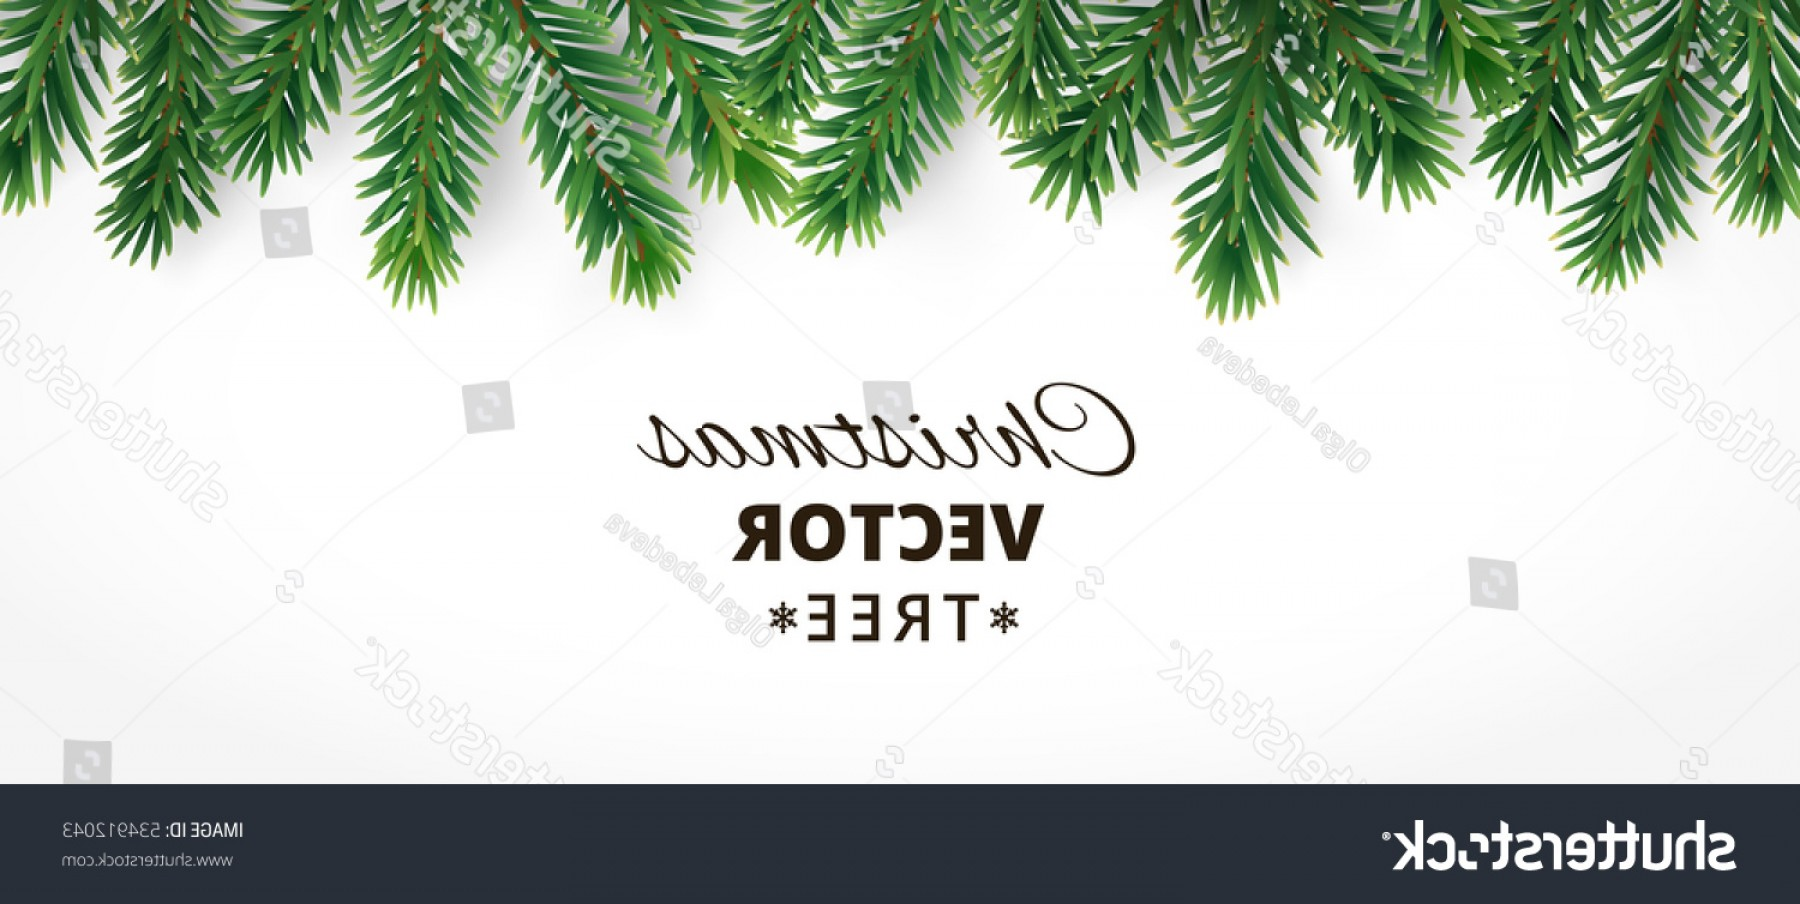 Christmas Horizontal Vector: Horizontal Banner Vector Christmas Tree Branches